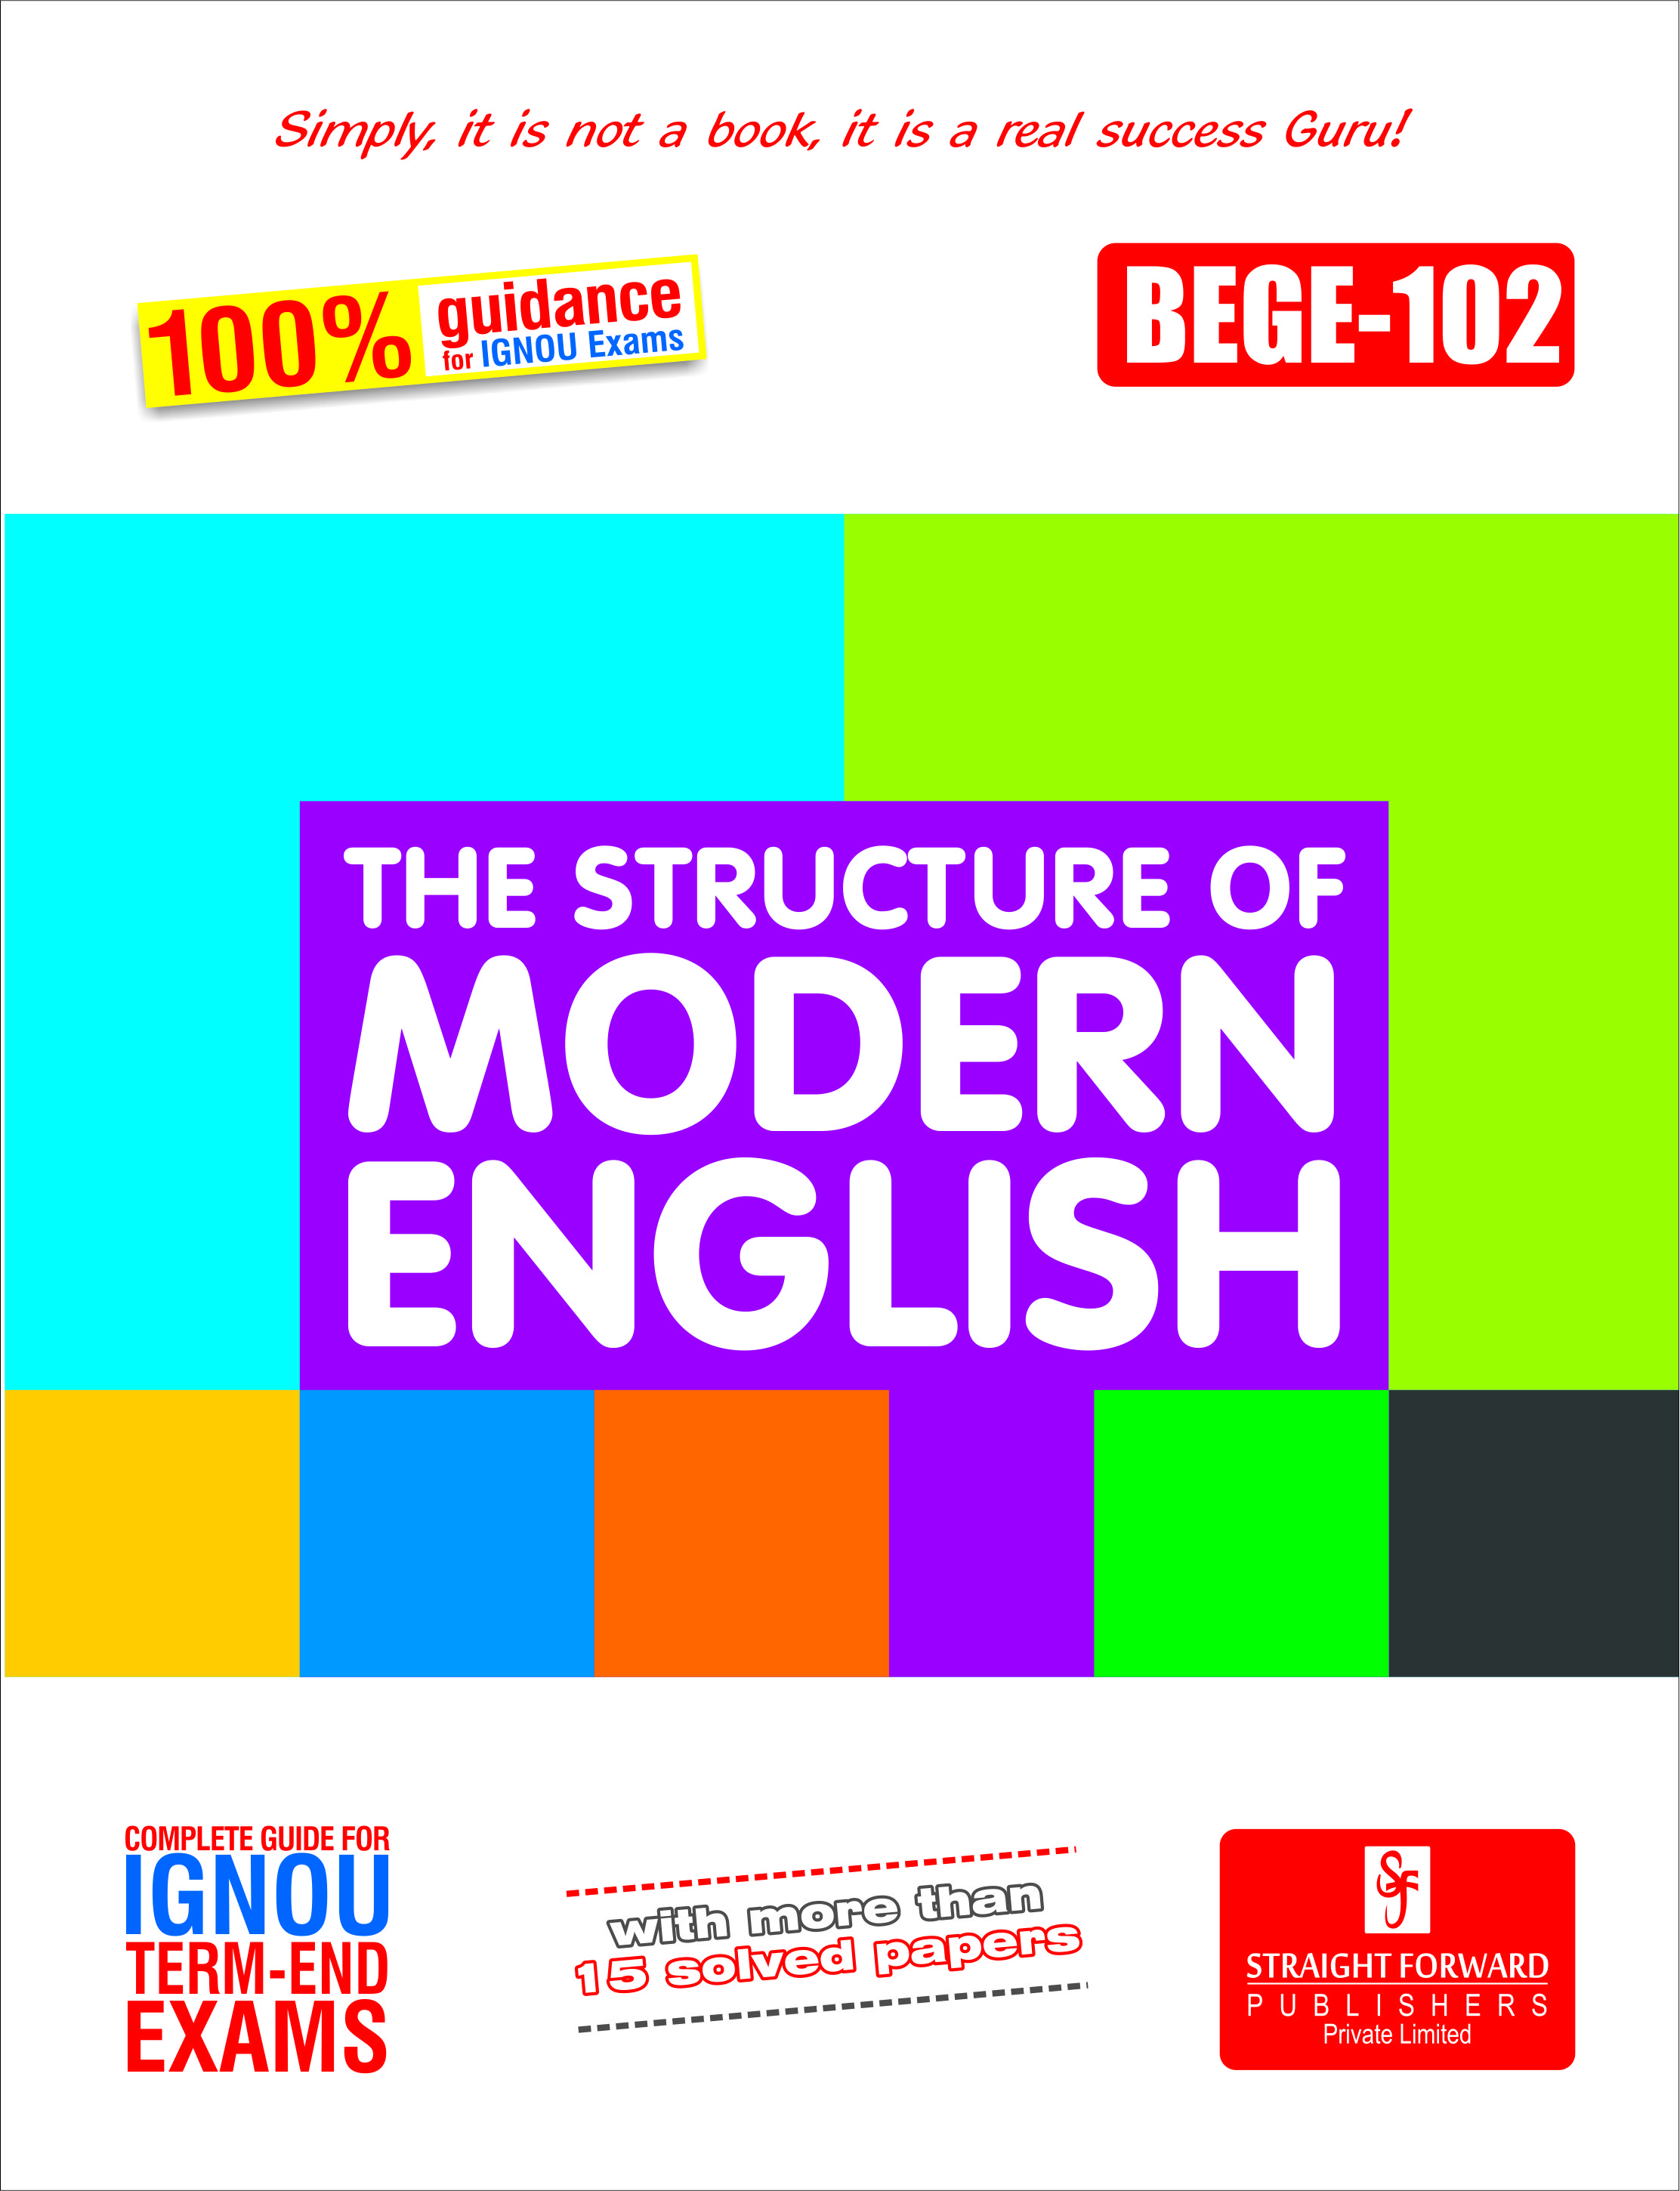 bege 102 Download ignou eeg 1 bege 101 from language to literature solved assignment 2017 2018 nowfully solved assignment with 100% solution call now ignou bdp (bachelor degree programmes) solved assignment 2017 2018.